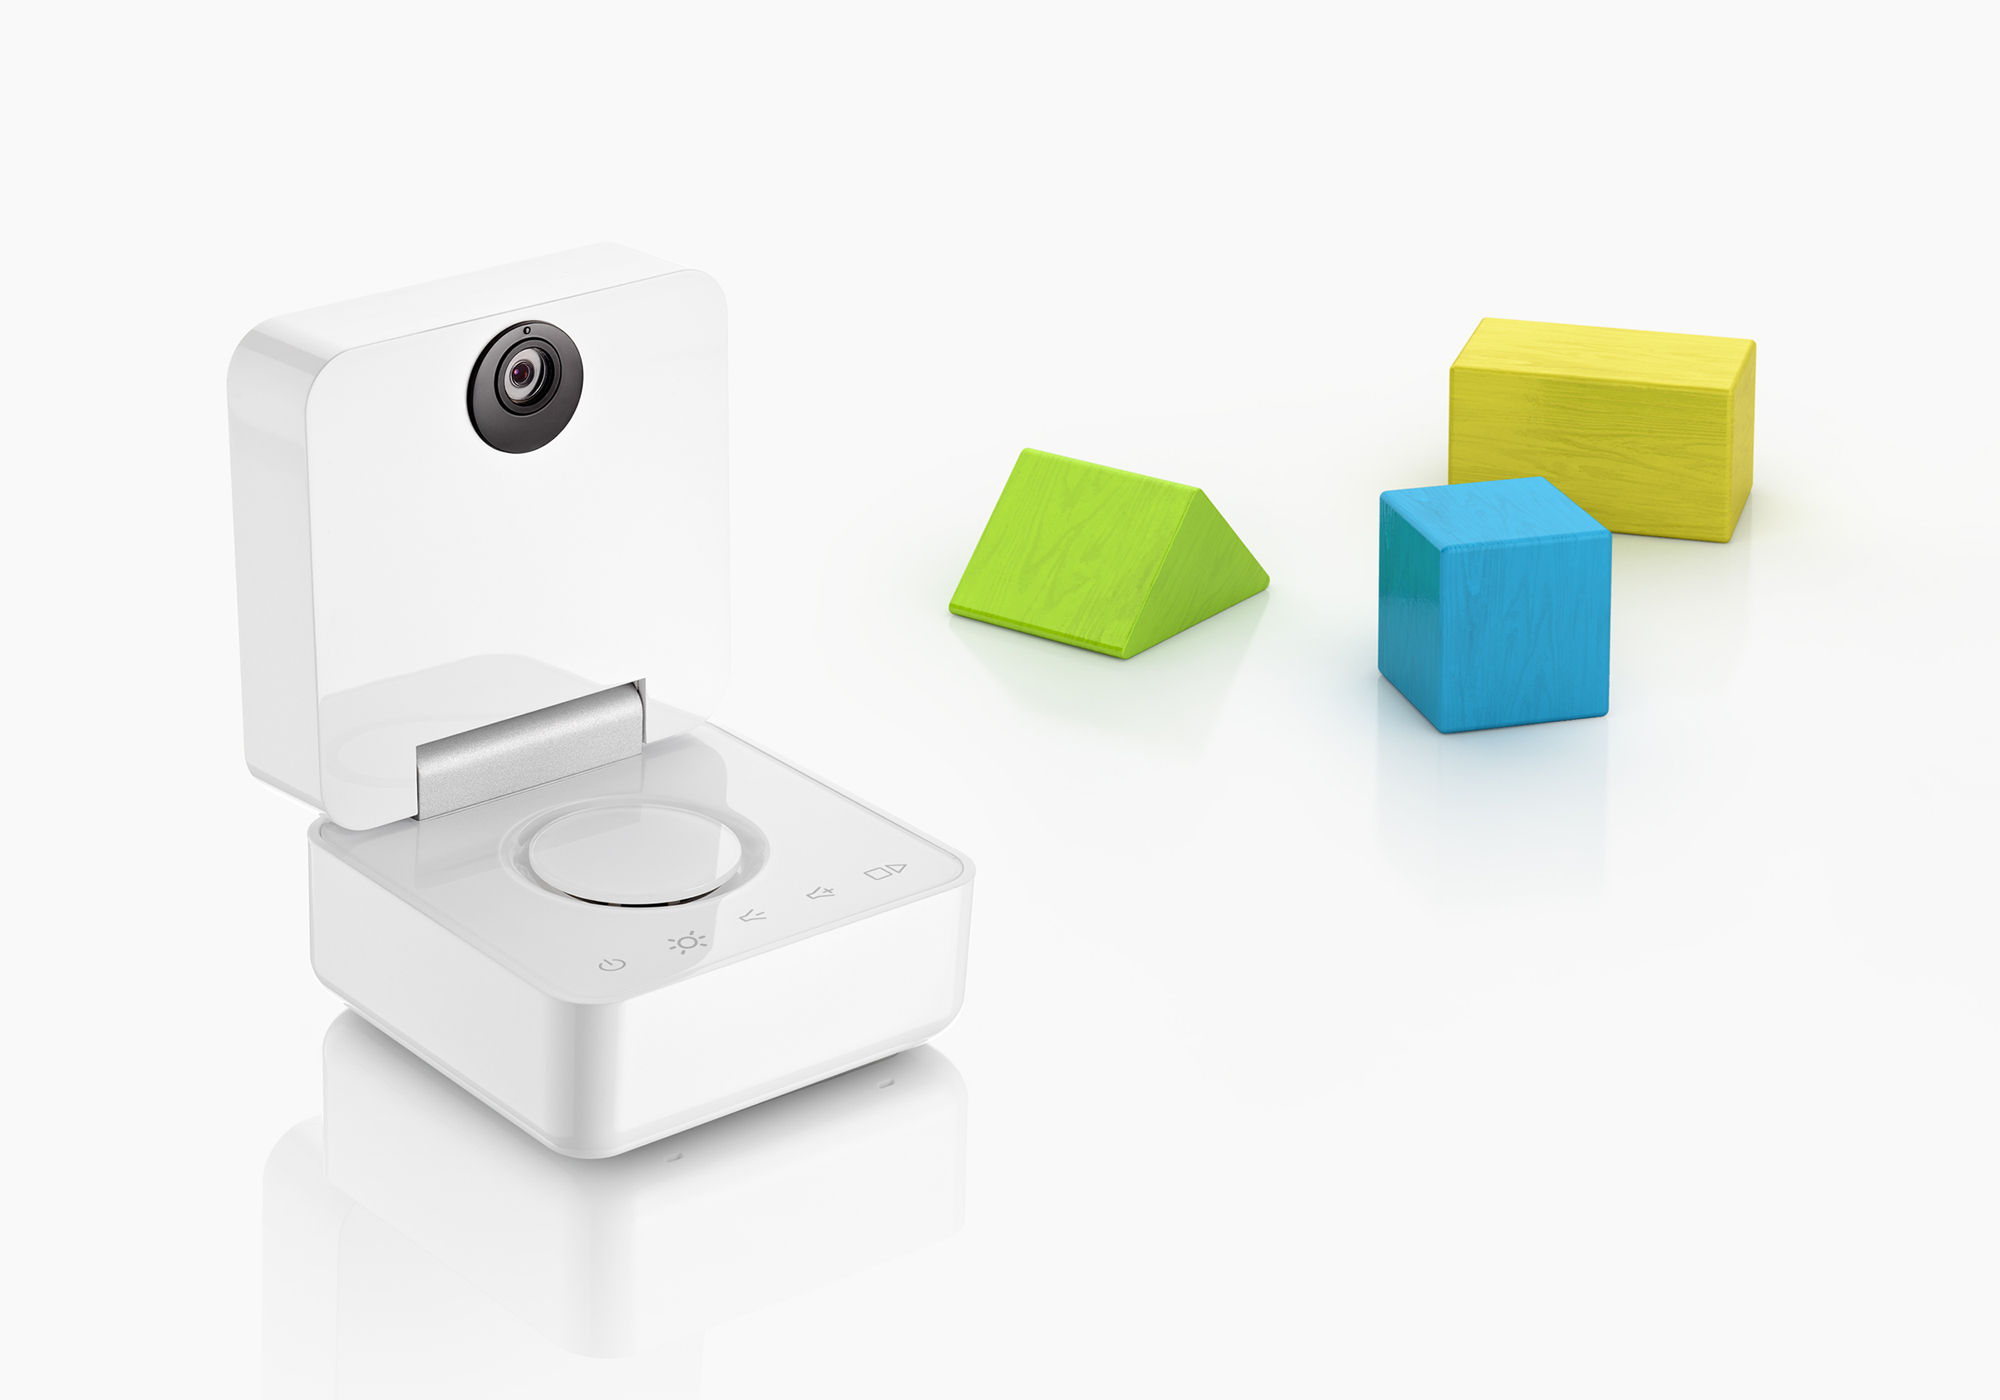 smart baby monitor babyphone video baby monitor iphone connection white b. Black Bedroom Furniture Sets. Home Design Ideas